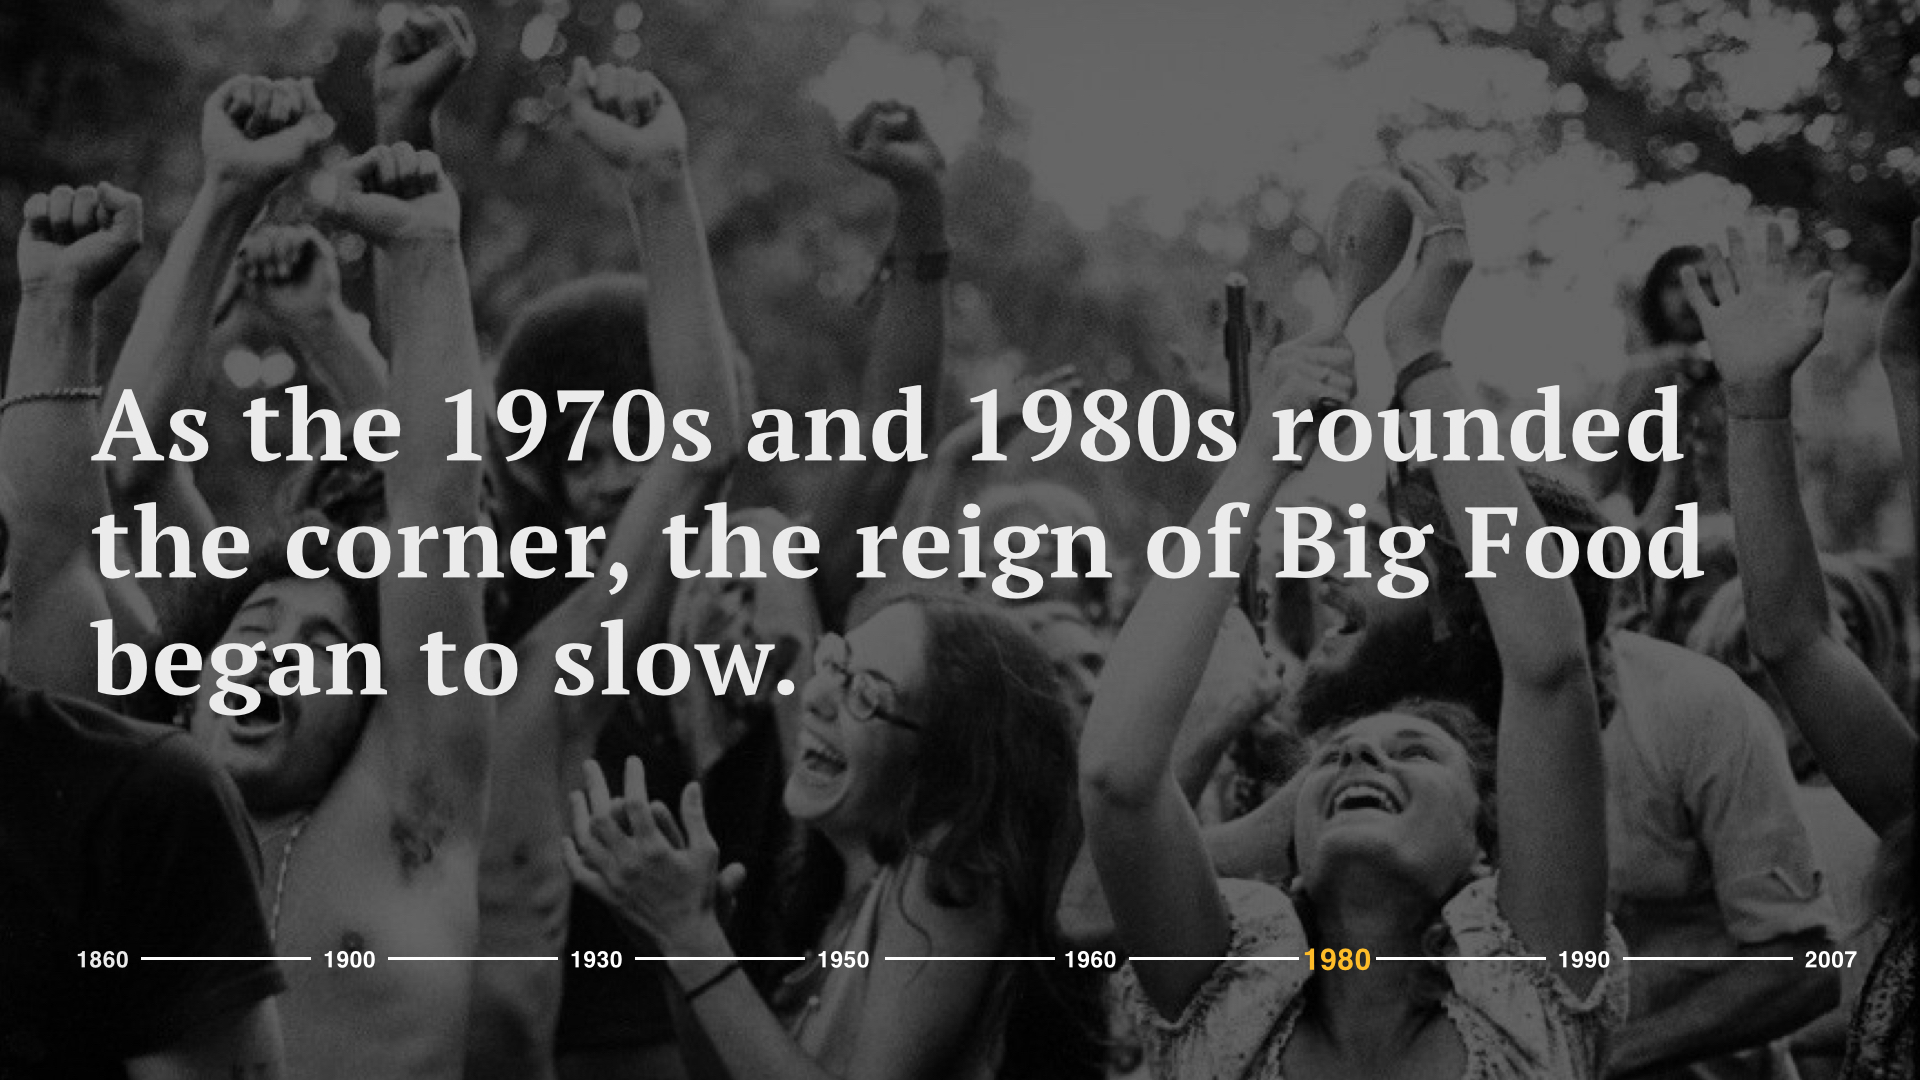 As the 1970s and 1980s rounded the corner, the reign of Big Food began to slow. The processed foods and packaged goods we had come to see thrive in the first half of the century were in for an uproar.  The counterculture took on the food industry. The hippie movement including those passionate in local and organic food swept the country.